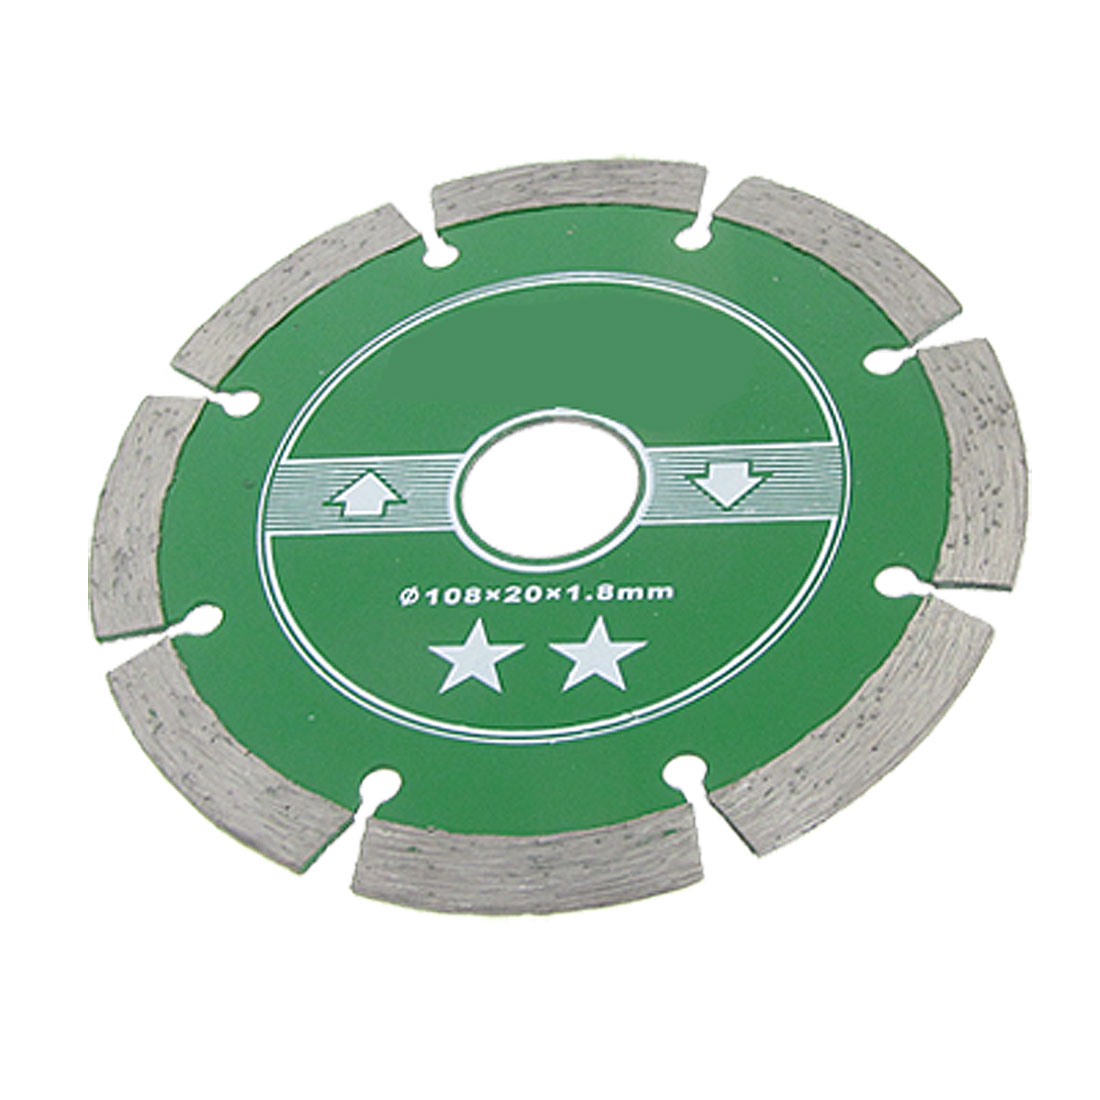 Concrete Tile Cutting Wheel Diamond Coated Saw Cutter 108 x 20 x 1.8mm